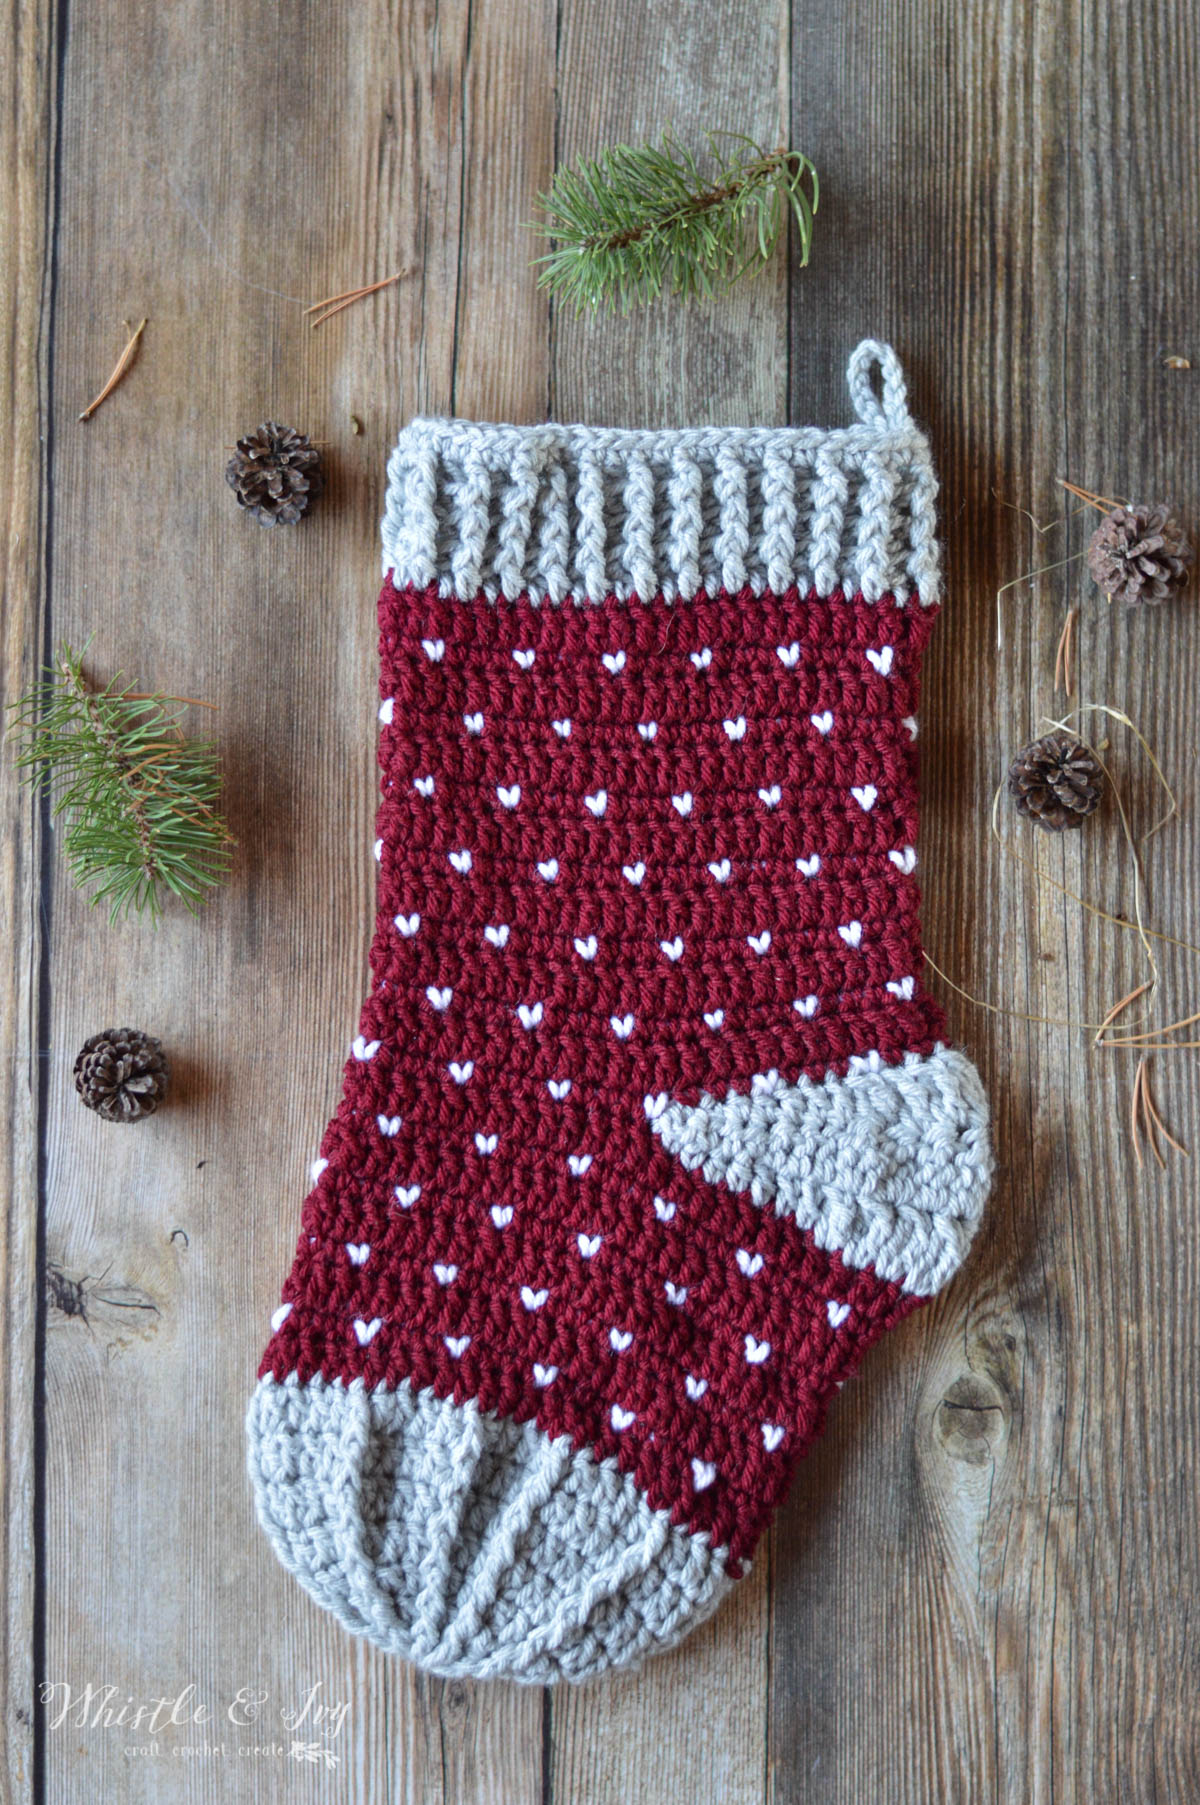 Crochet Stocking Pattern  Crochet Snowfall Stocking Whistle And Ivy